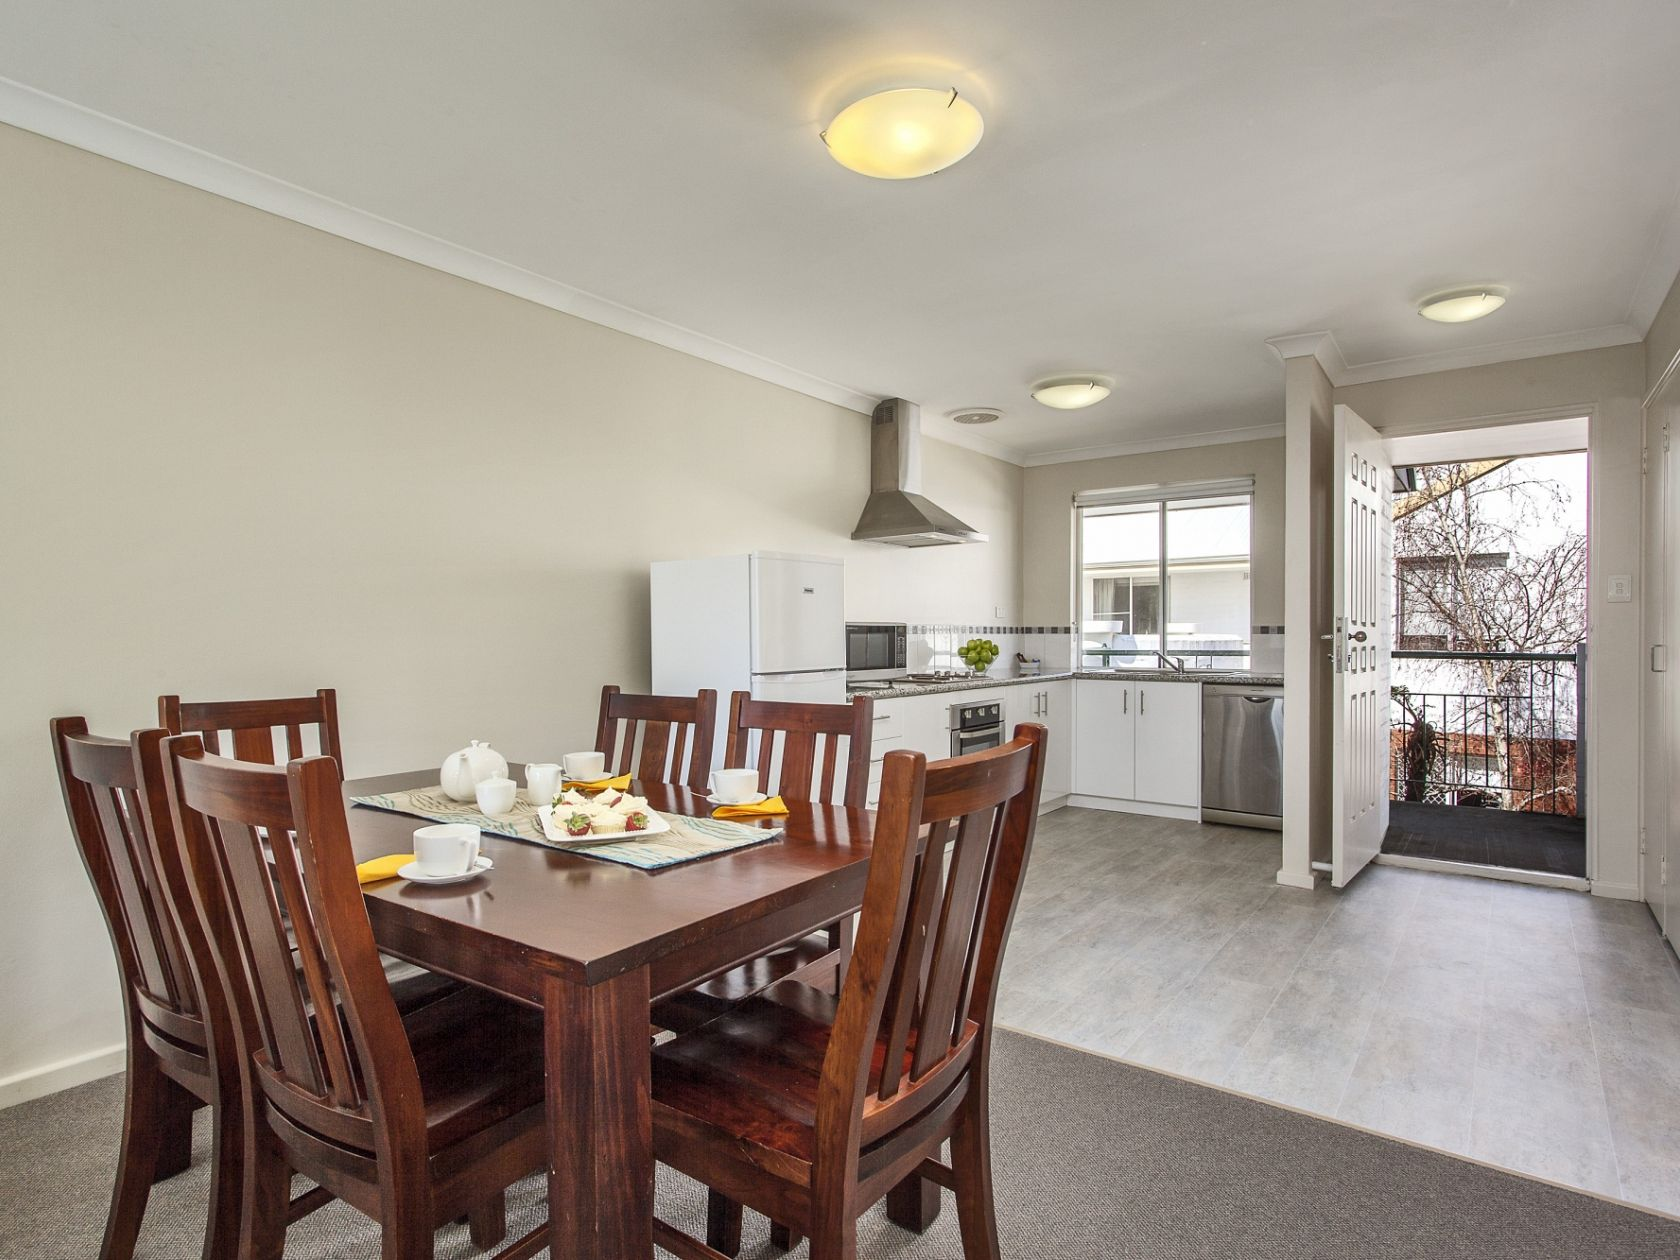 Leasehold Interest Perth Apartment Hotel Offering Close to 50% ROI